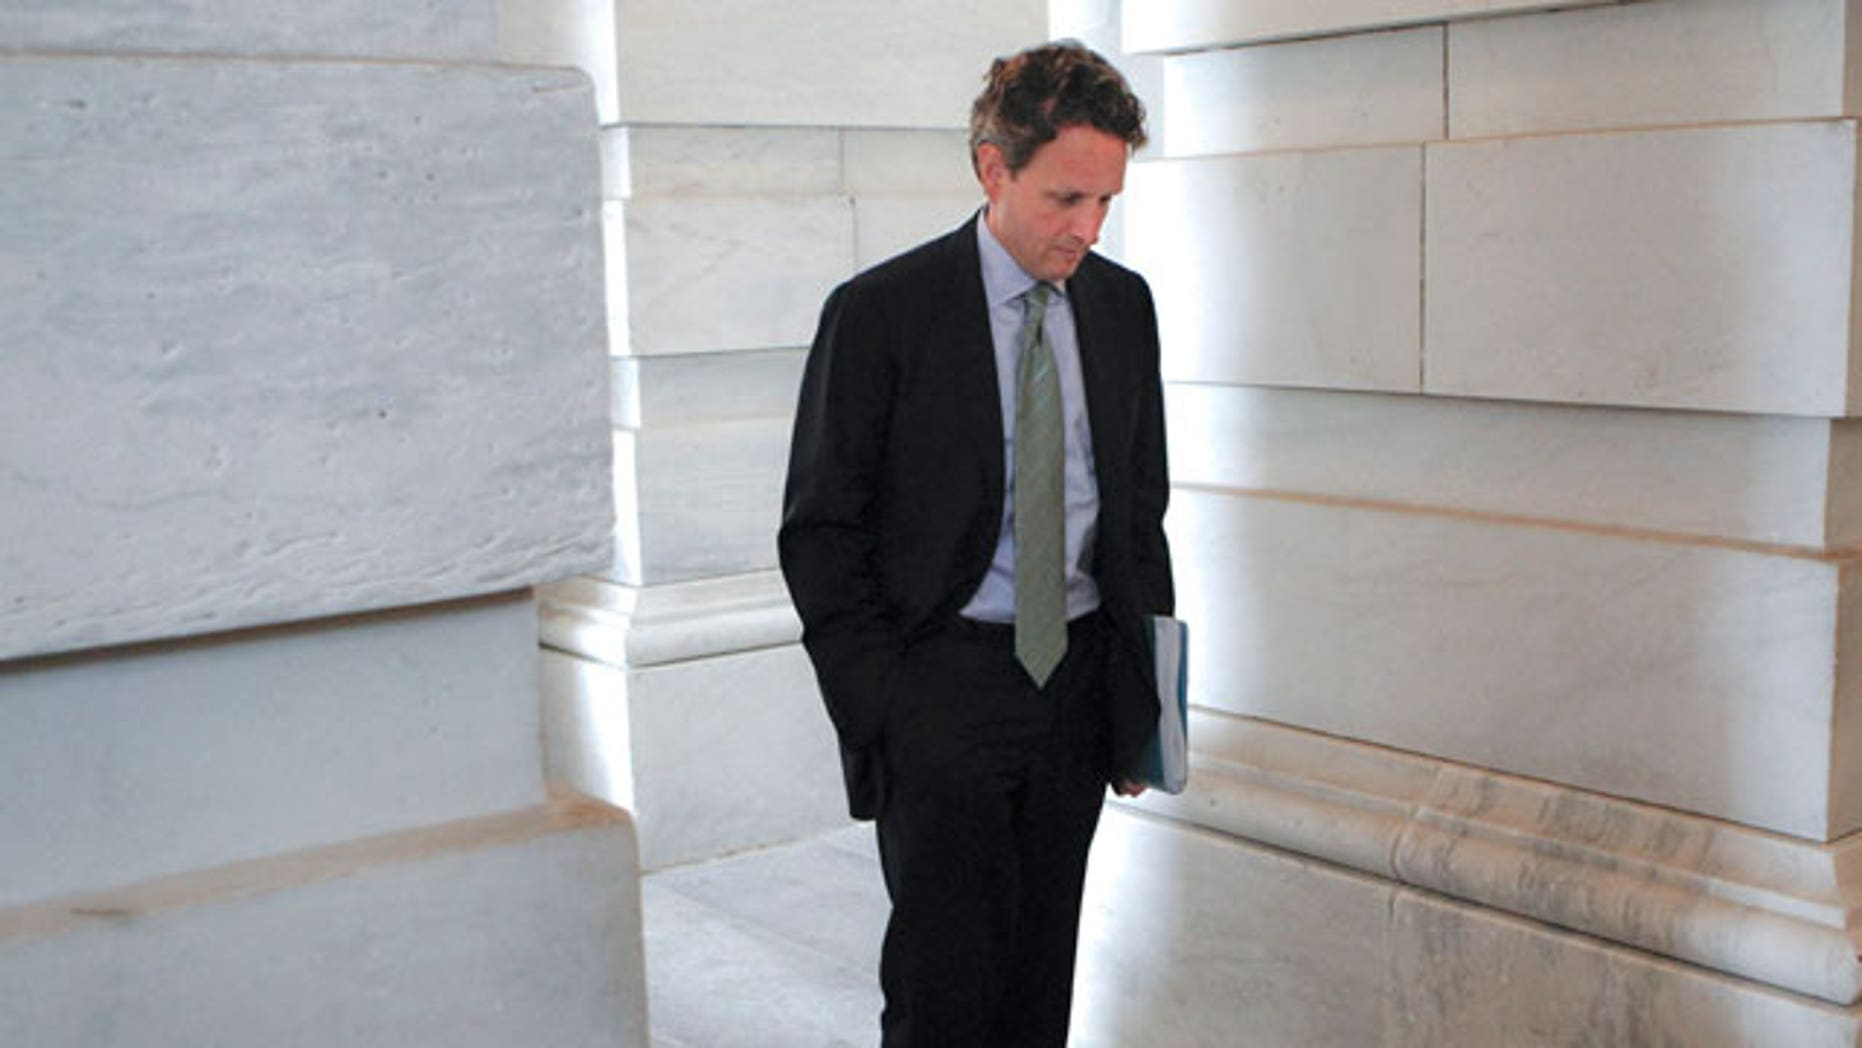 In this file photo taken June 16, 2011, Treasury Secretary Tim Geithner waits for the arrival of Vice President Joe Biden during the negotiations between Republicans and Democrats in Congress on how to solve America's debt crisis and budget problems, at the Capitol in Washington.